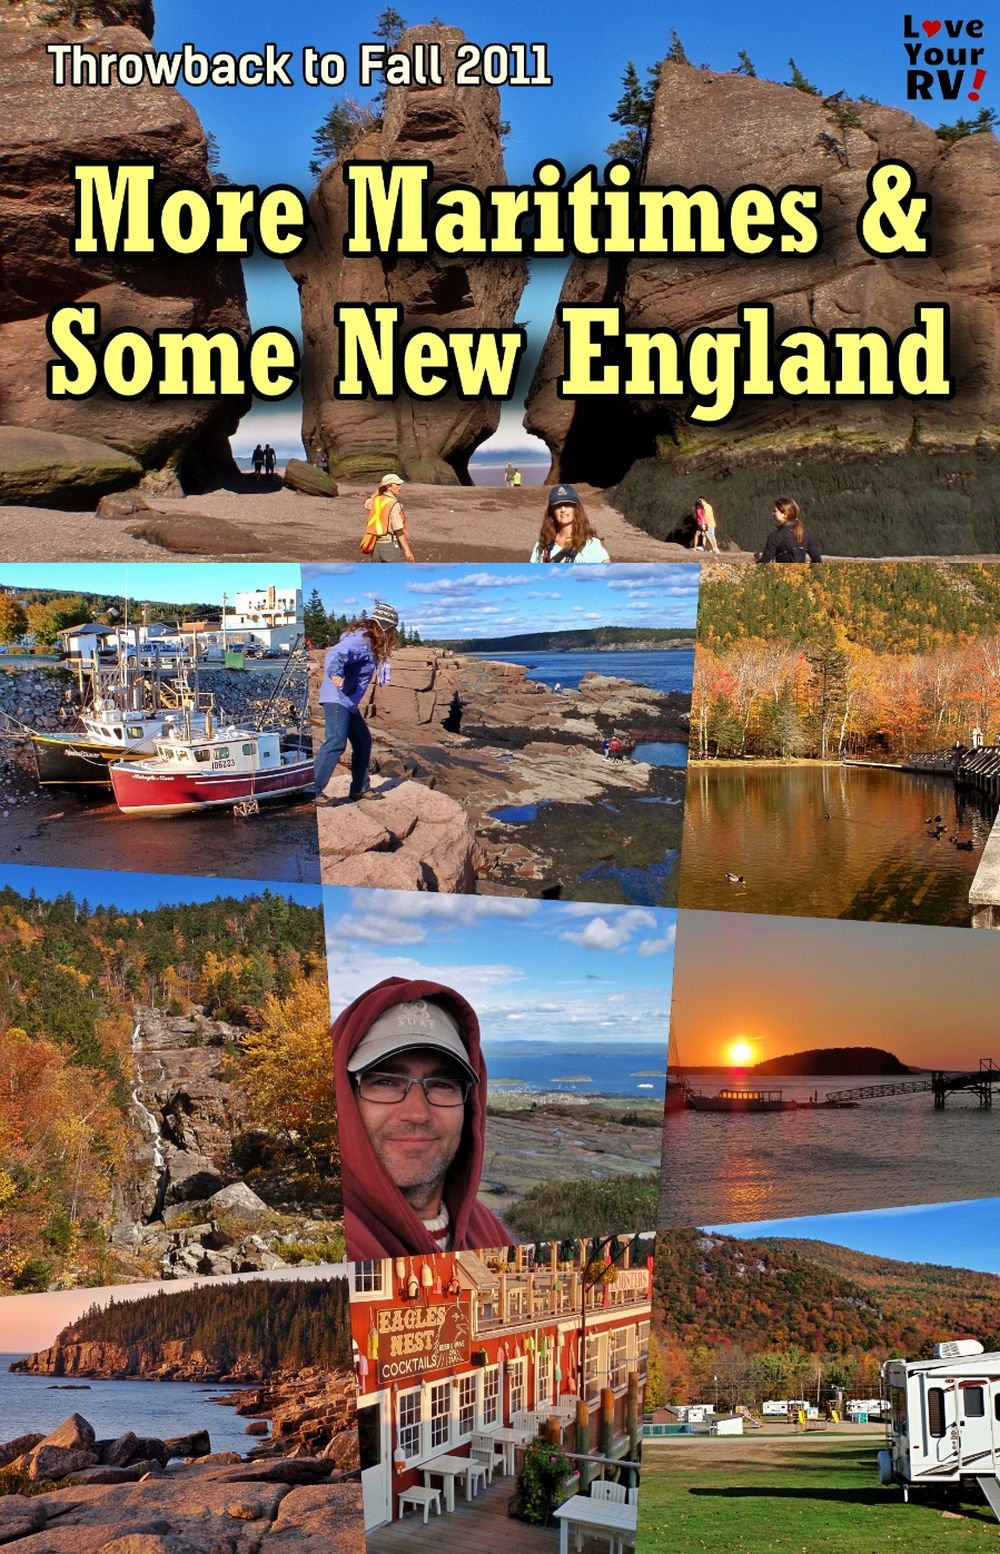 Throwback to Fall 2011 Maritimes and New England Trip Highlights